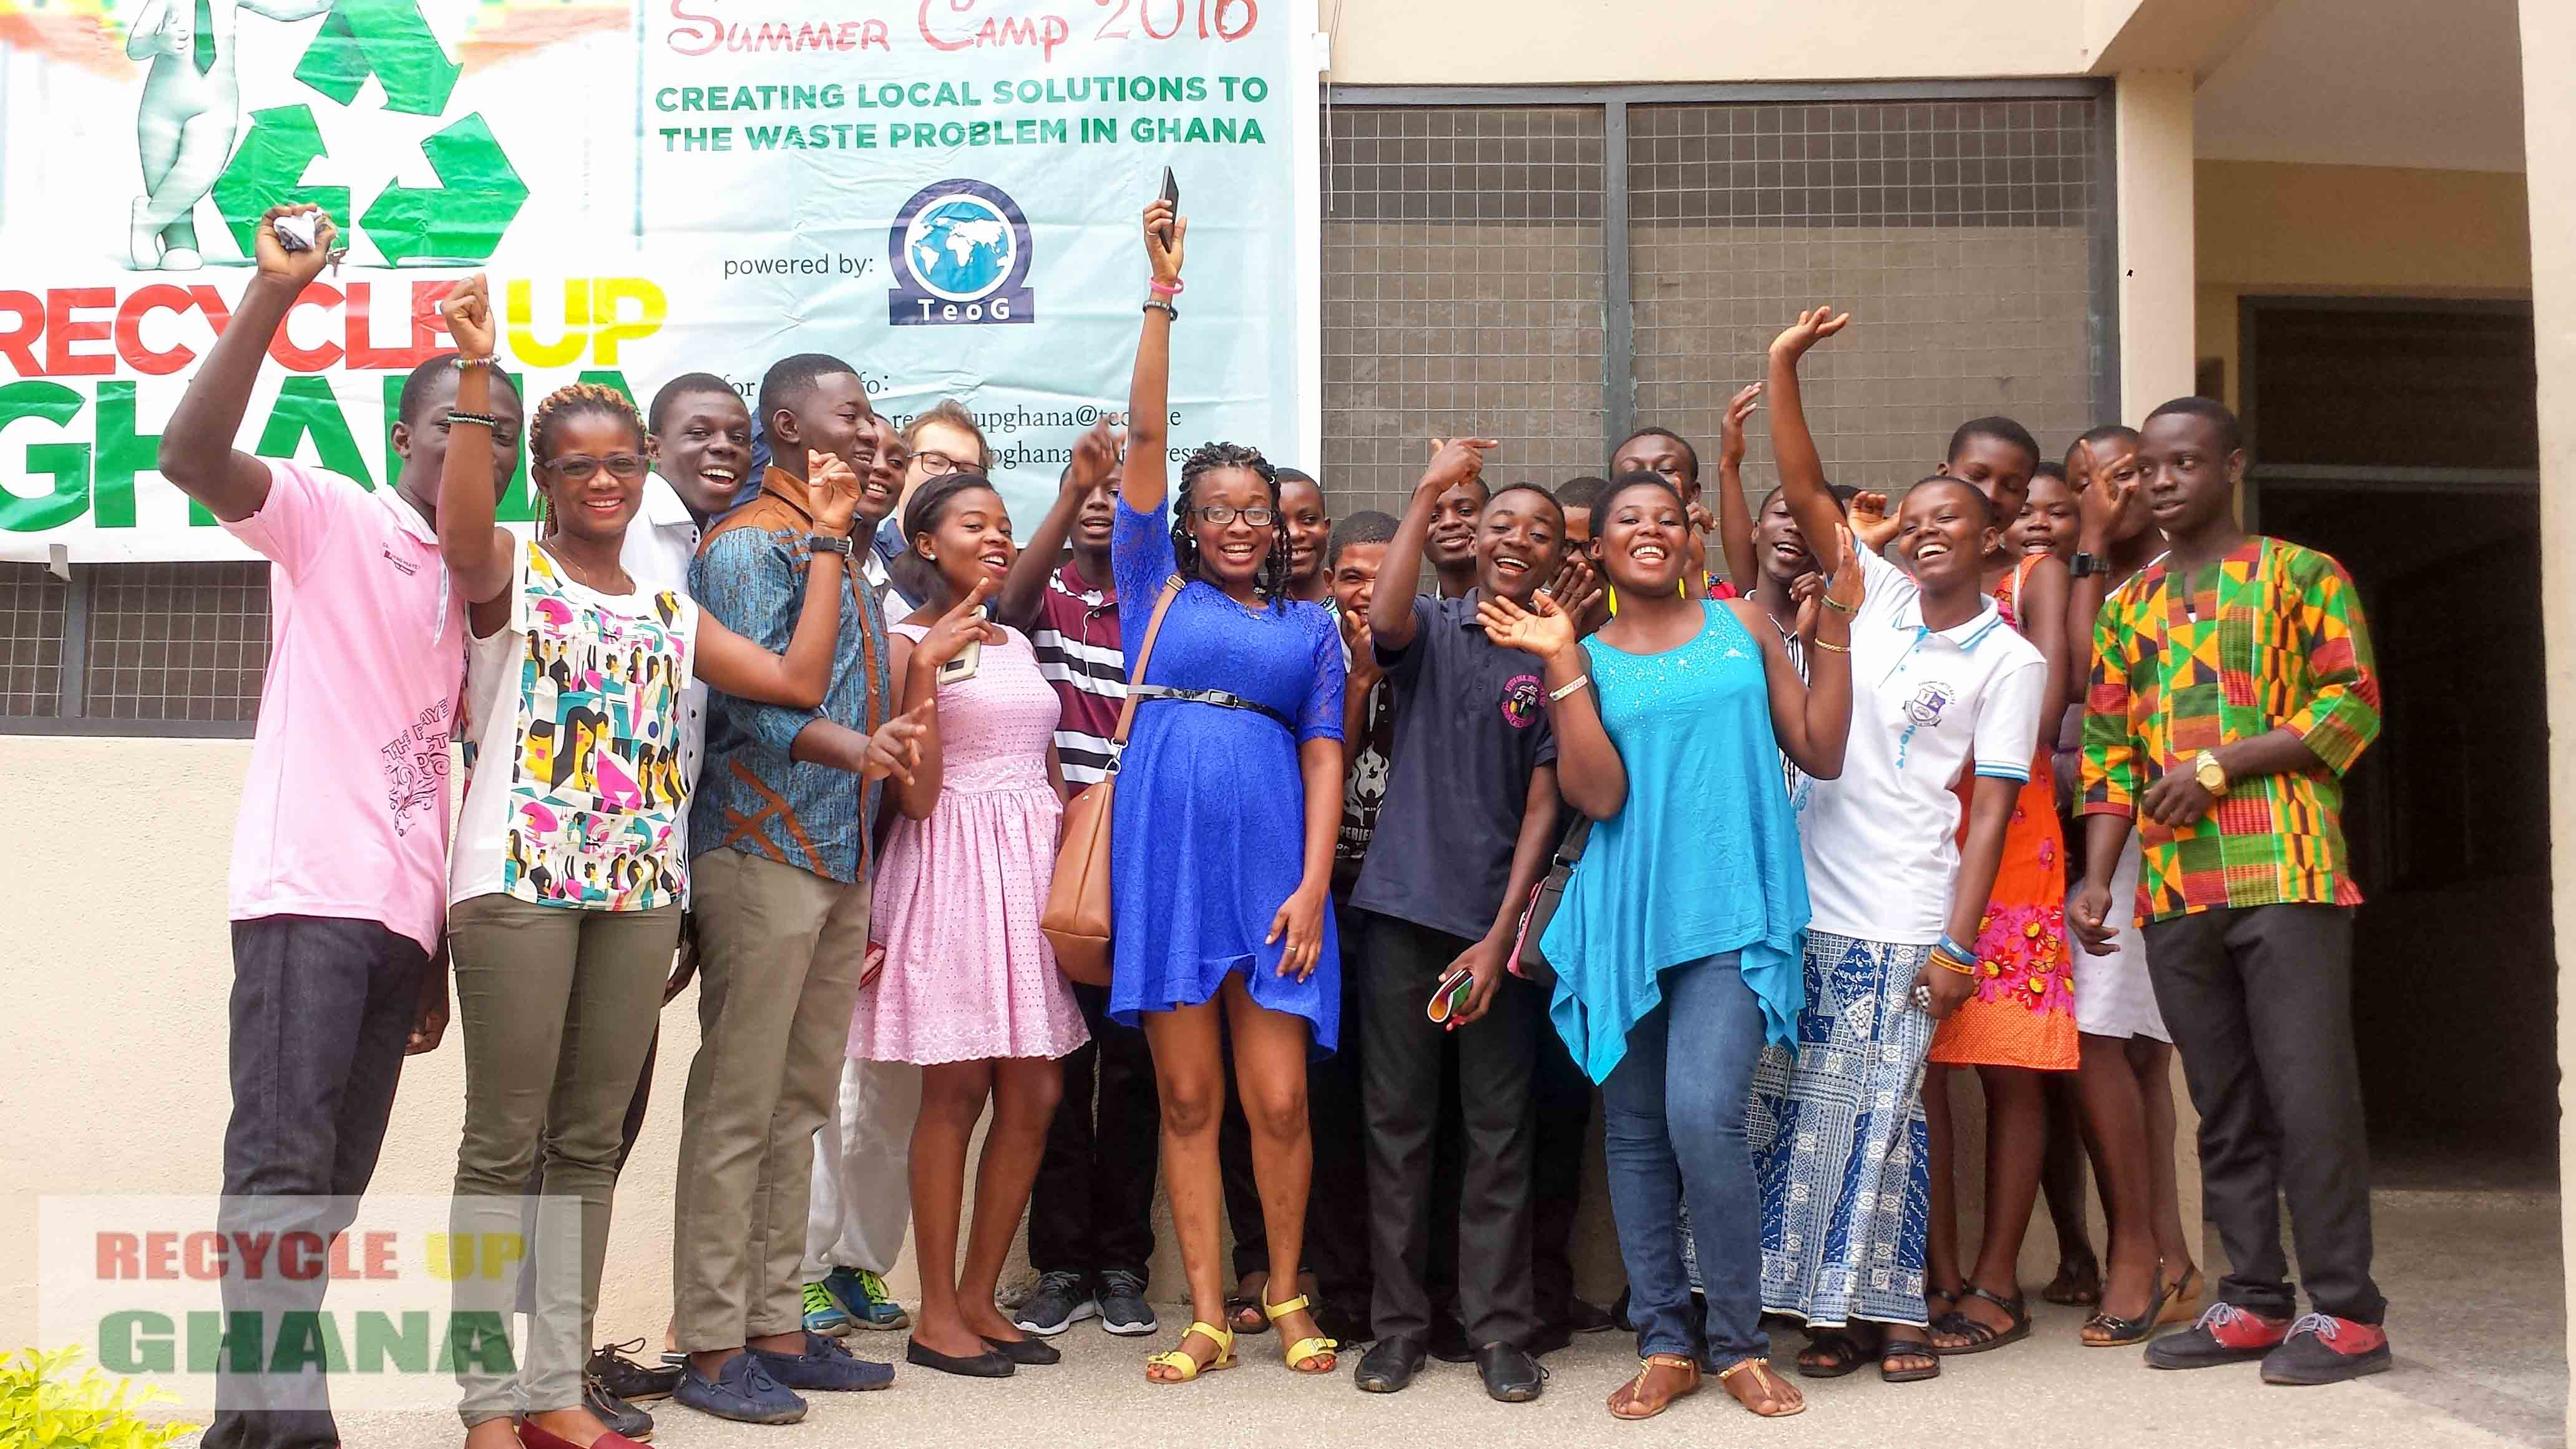 Day 2 in Cape Coast: Communication Skills and Plastic Knowledge